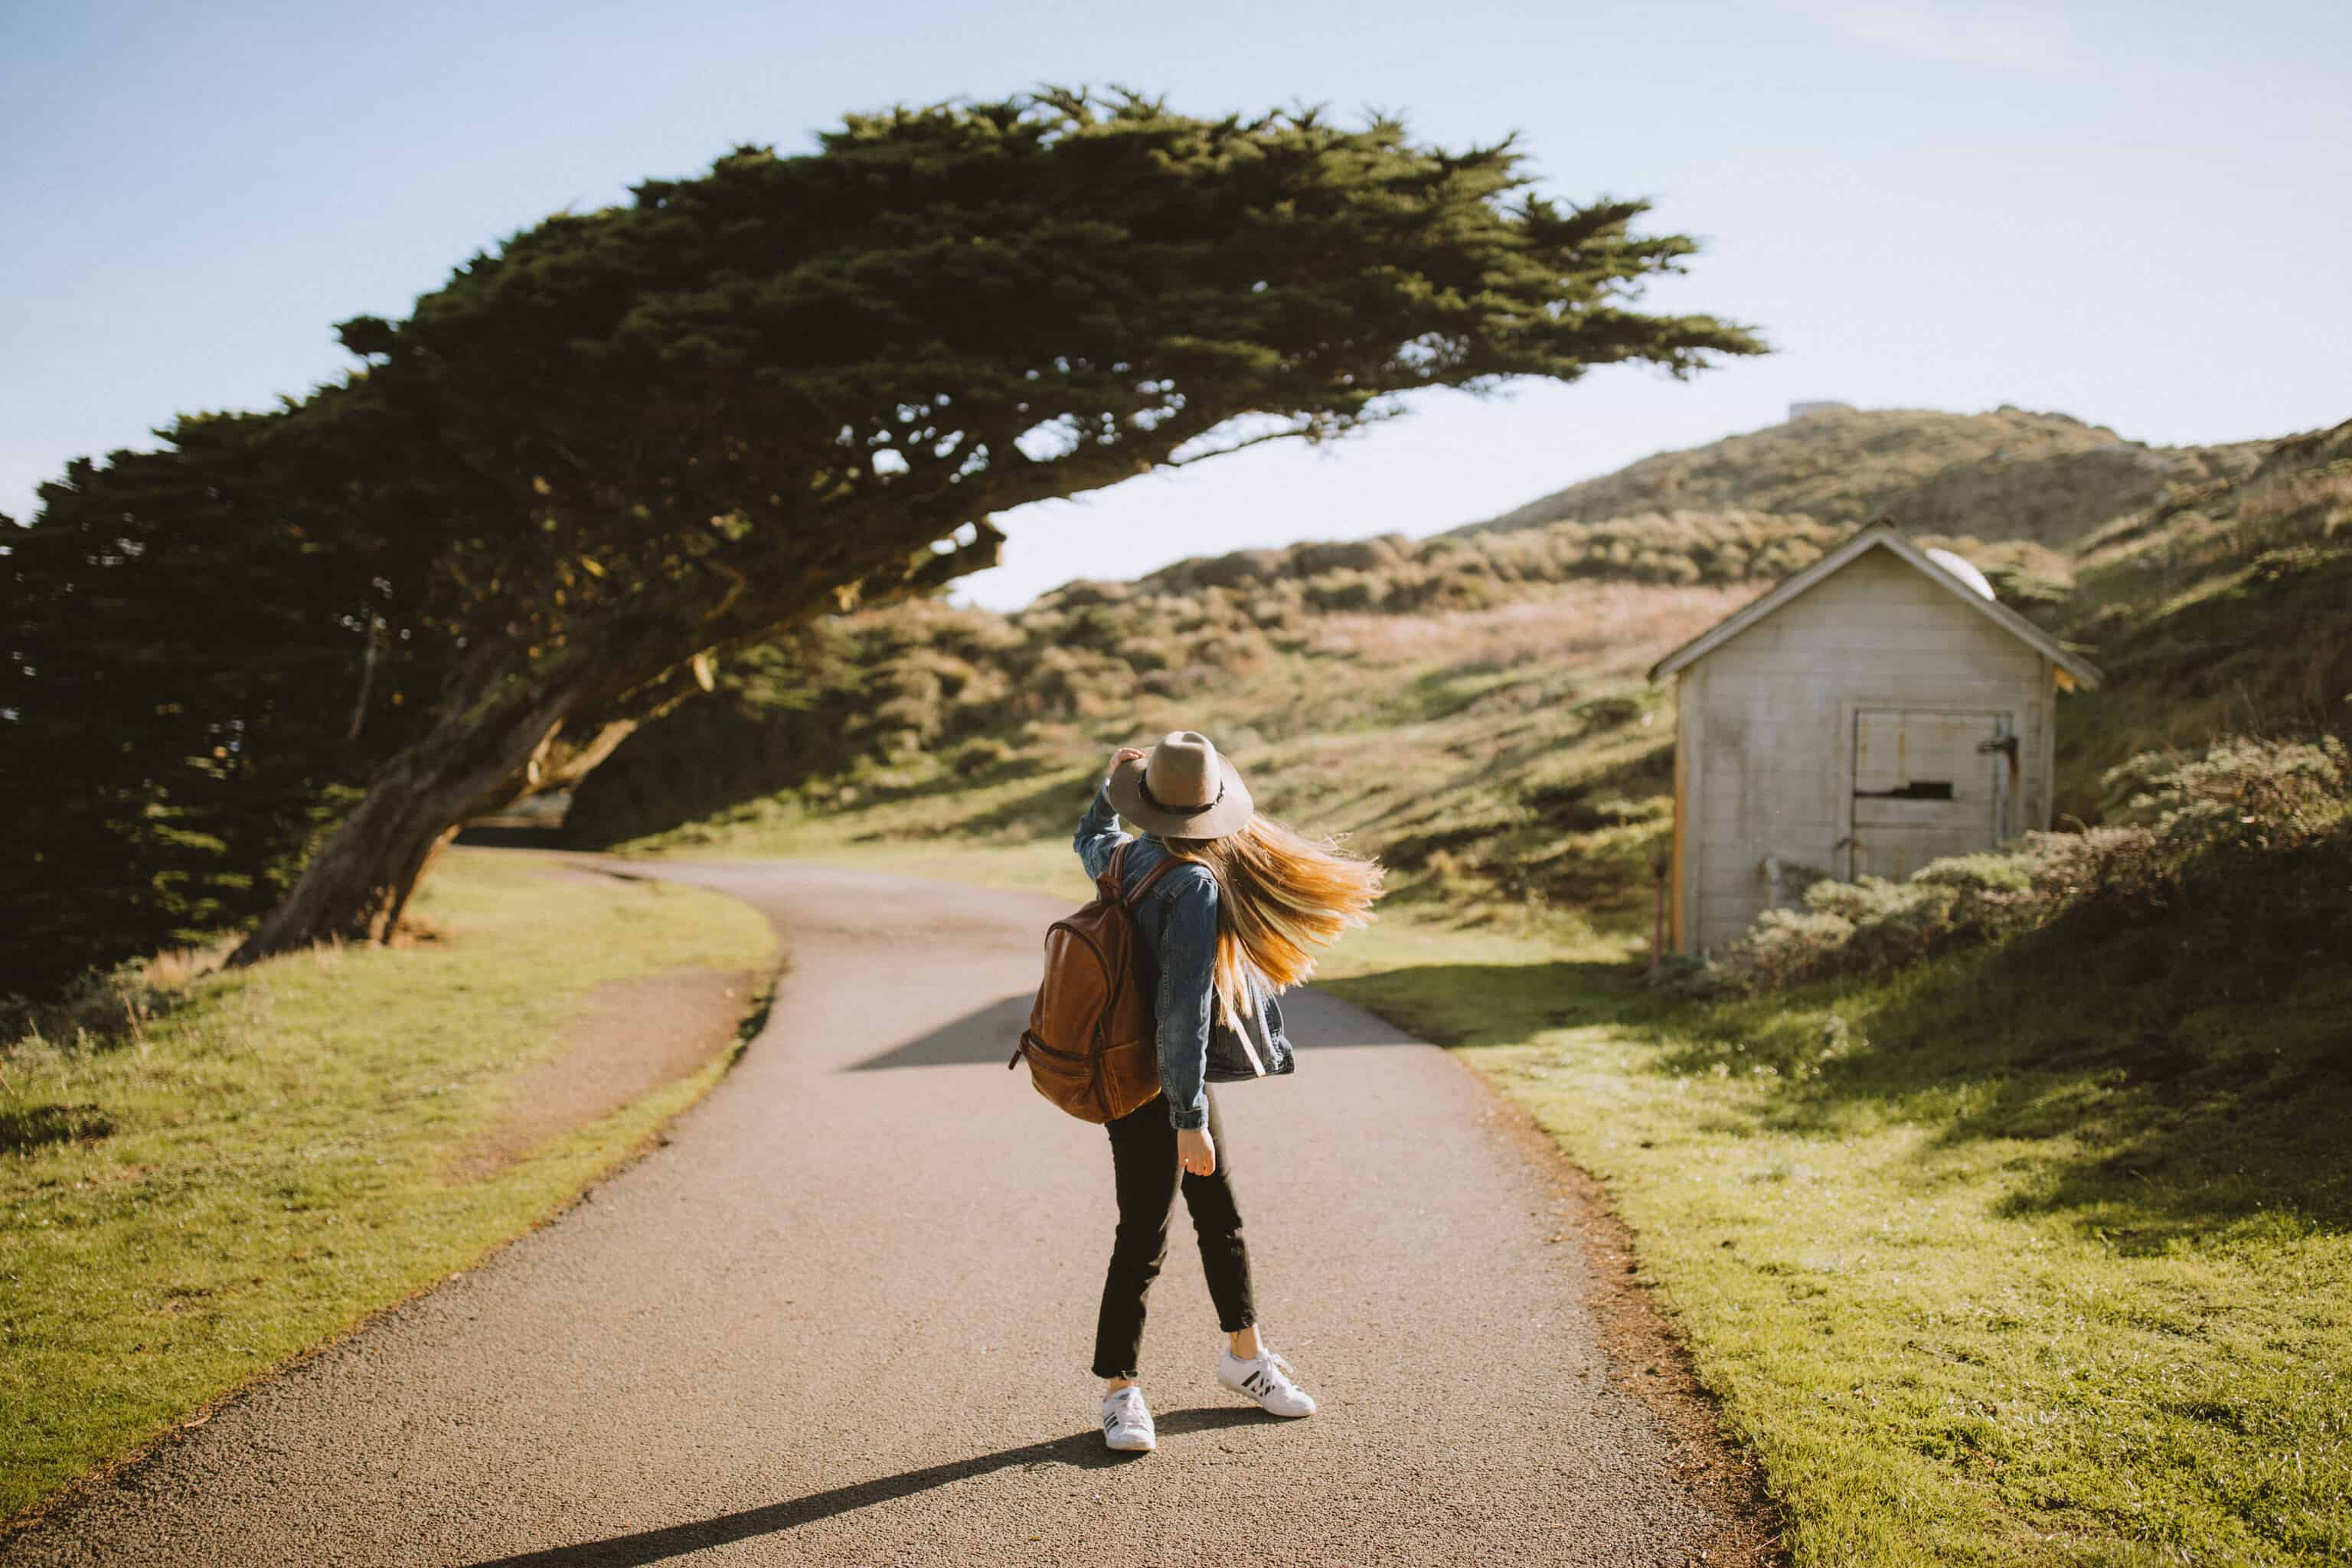 Emily Standing near the Leaning Tree - Things To Do In San Francisco Post